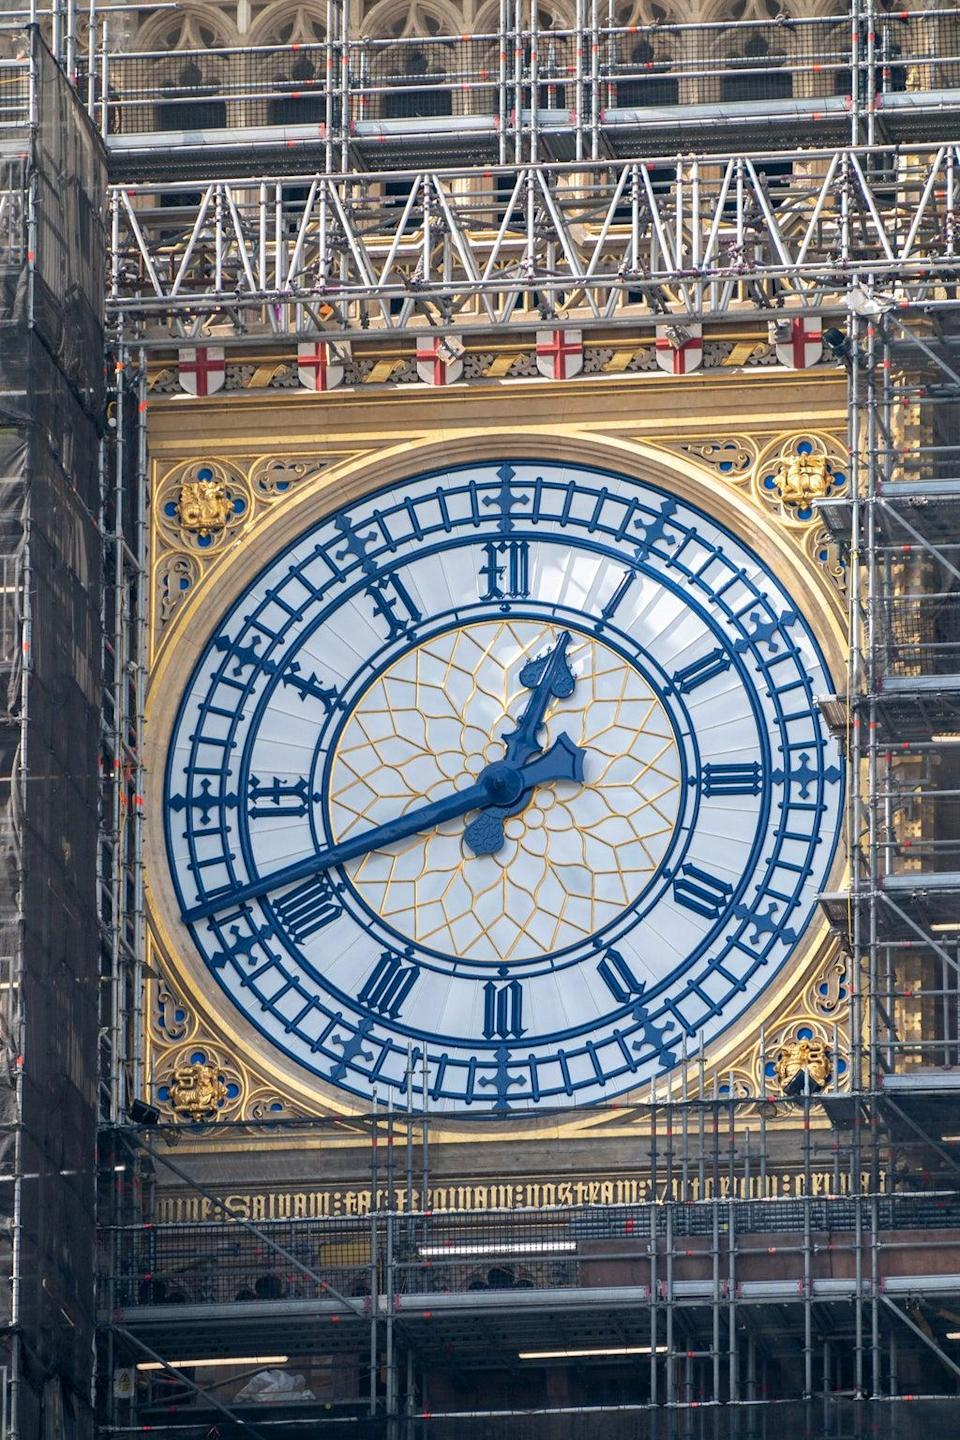 The St George's cross shields above the Big Ben clock face have been painted red and white (PA)